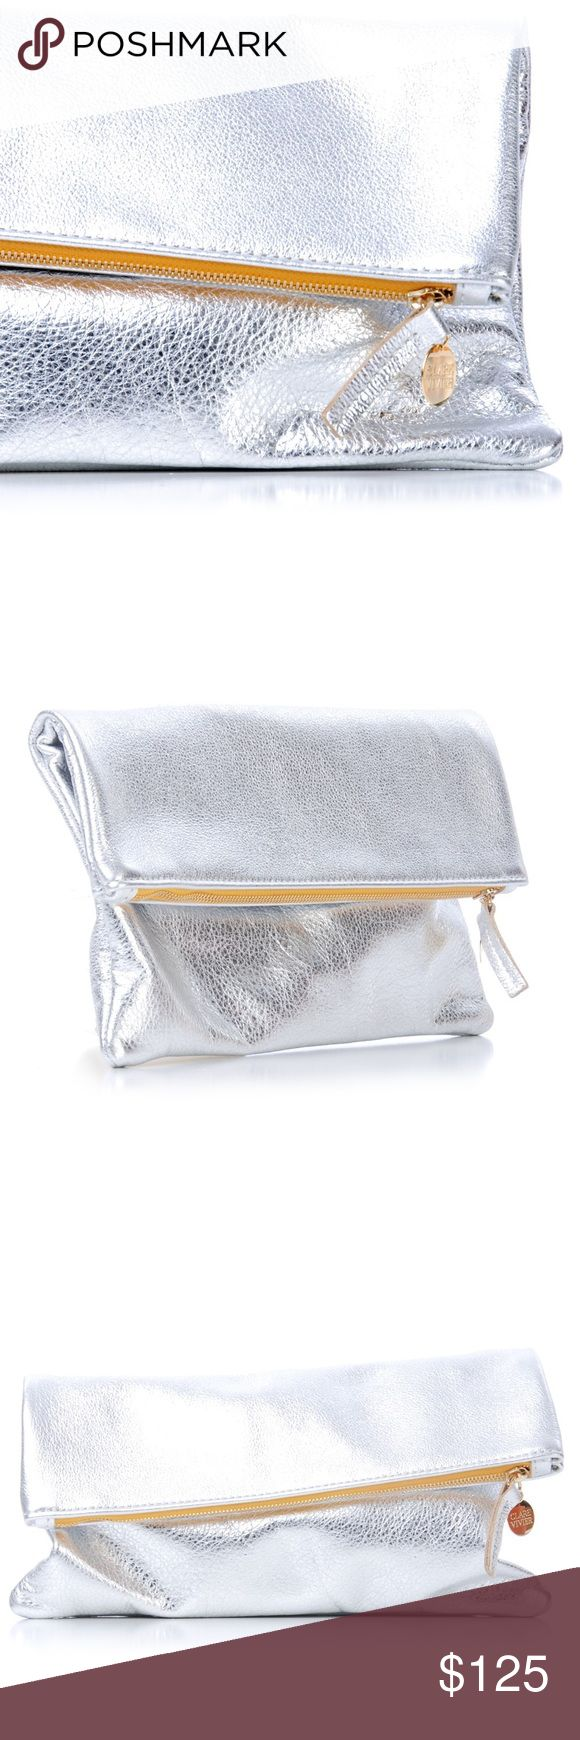 "CLARE VIVIER Silver Foldover Clutch NWT CLARE VIVIER Silver Foldover Clutch NWT -- comes with dustbag and in box, never worn, gorgeous and versatile. Zip top closure with logo pull charm, foldover design.  Approx 11.5"" x 11.5"" Clare Vivier Bags Clutches & Wristlets"